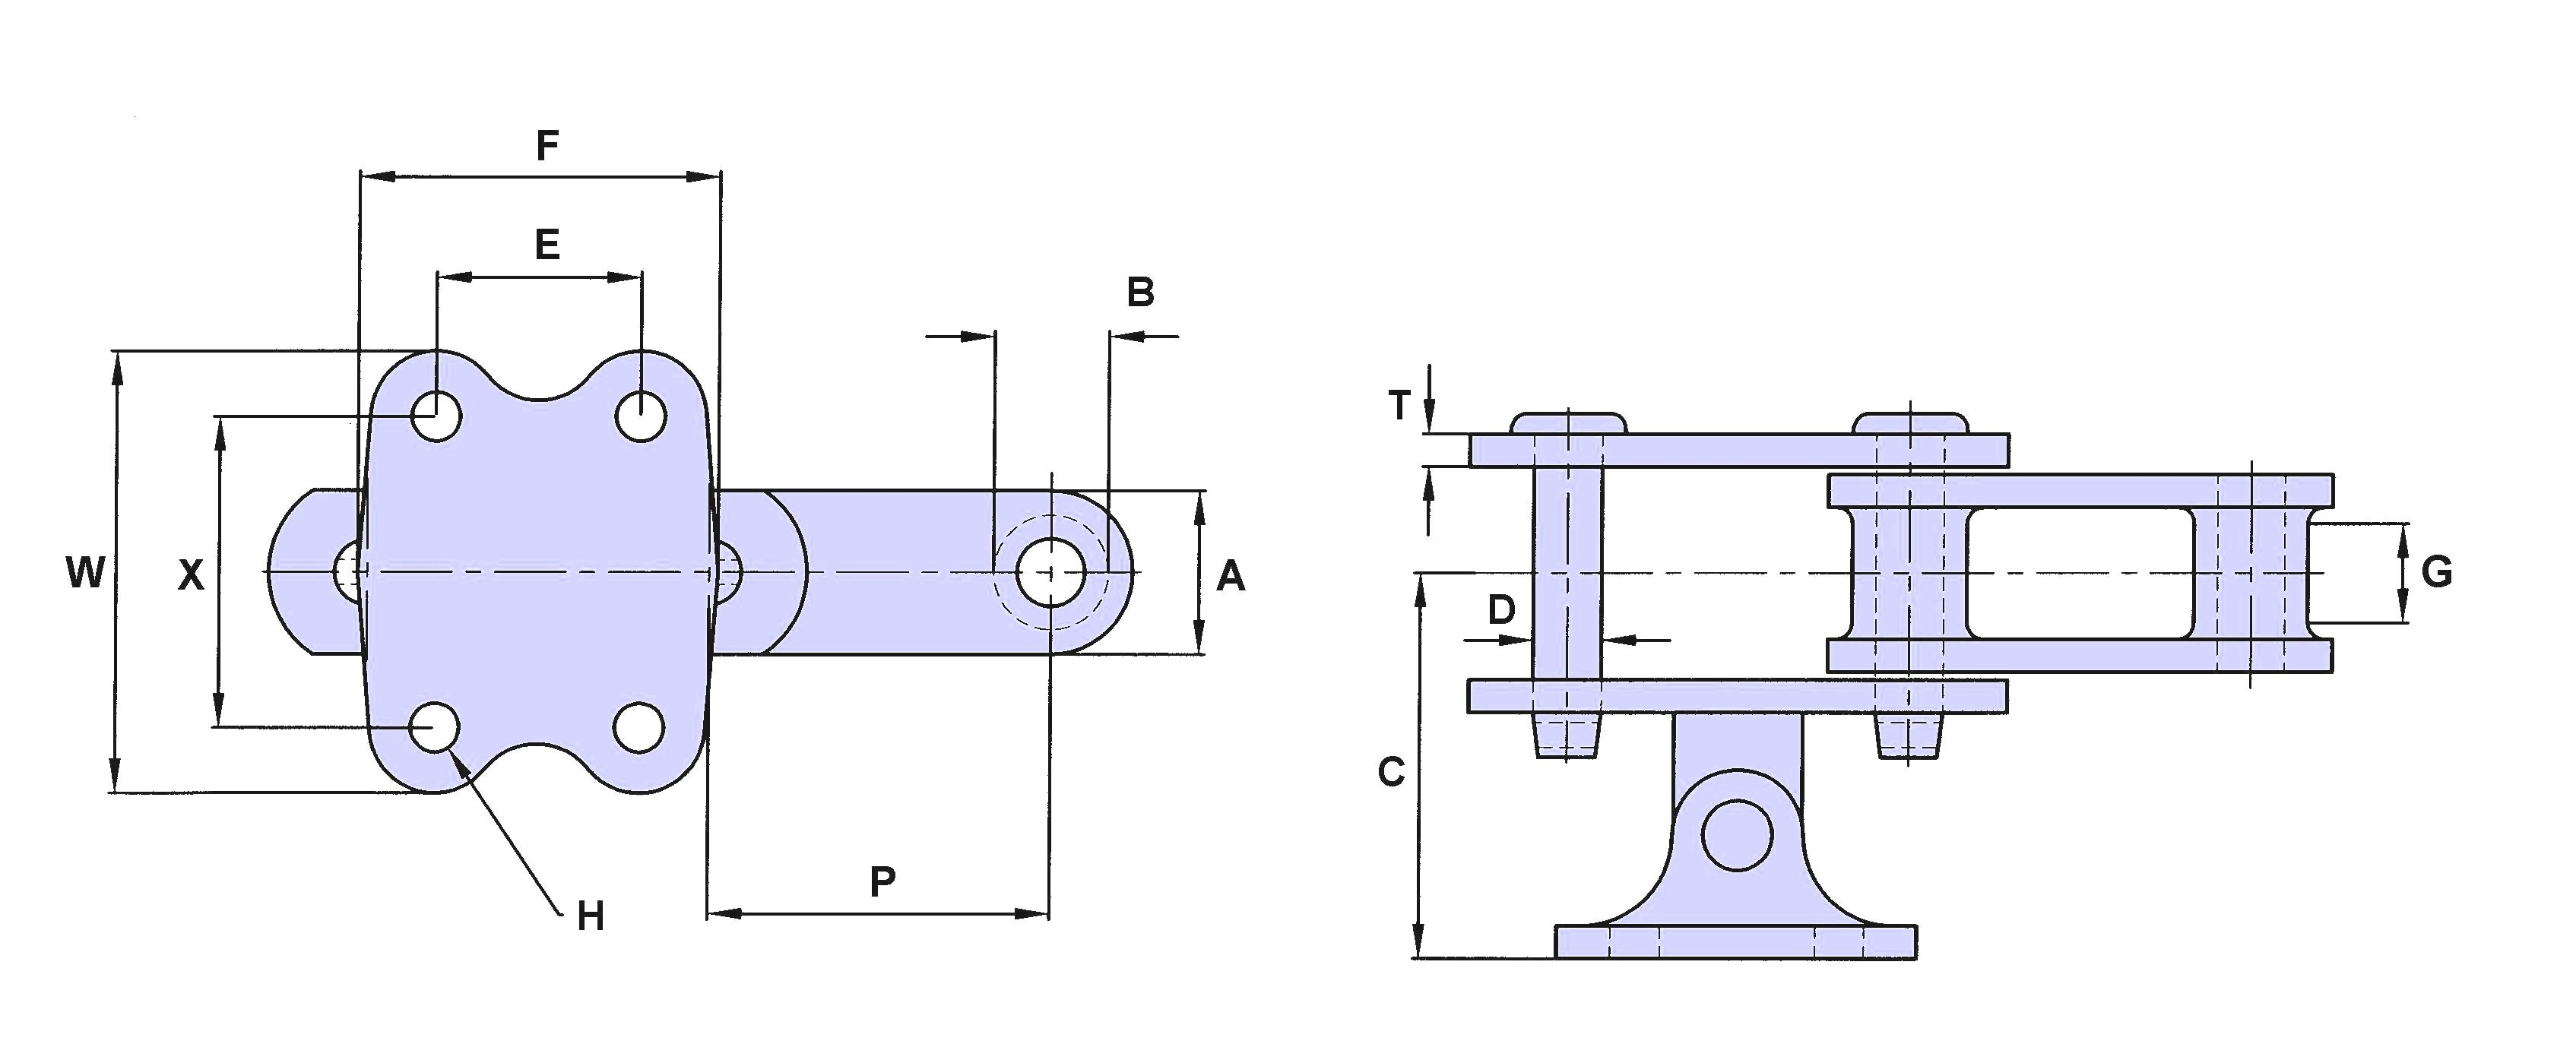 AS20 attachment